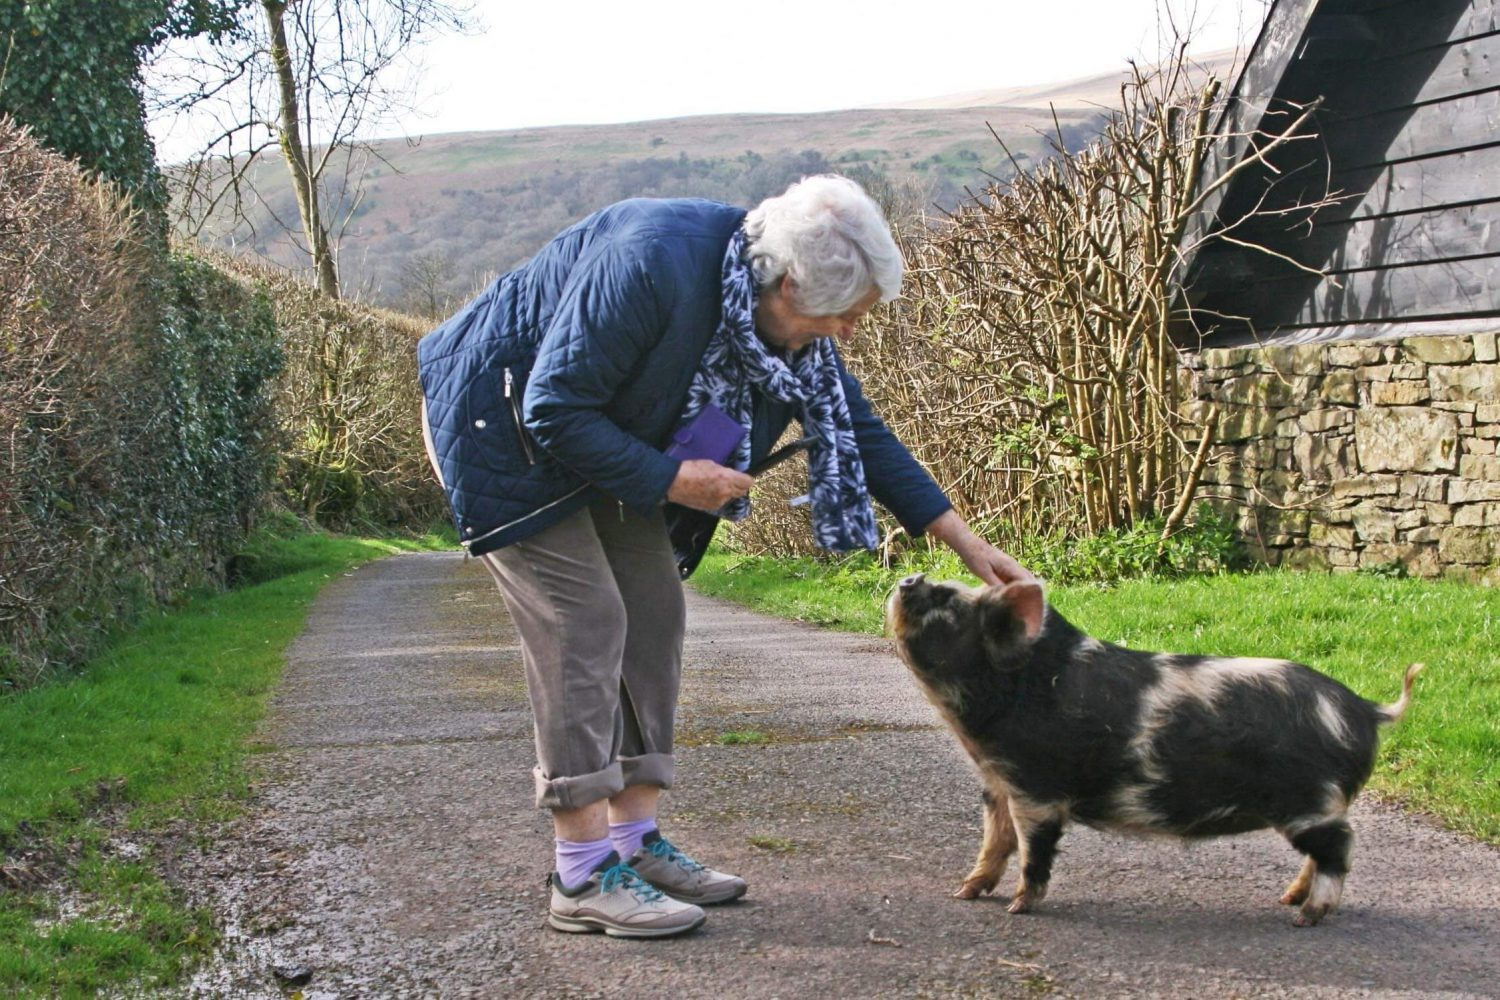 walk a pig with good day out